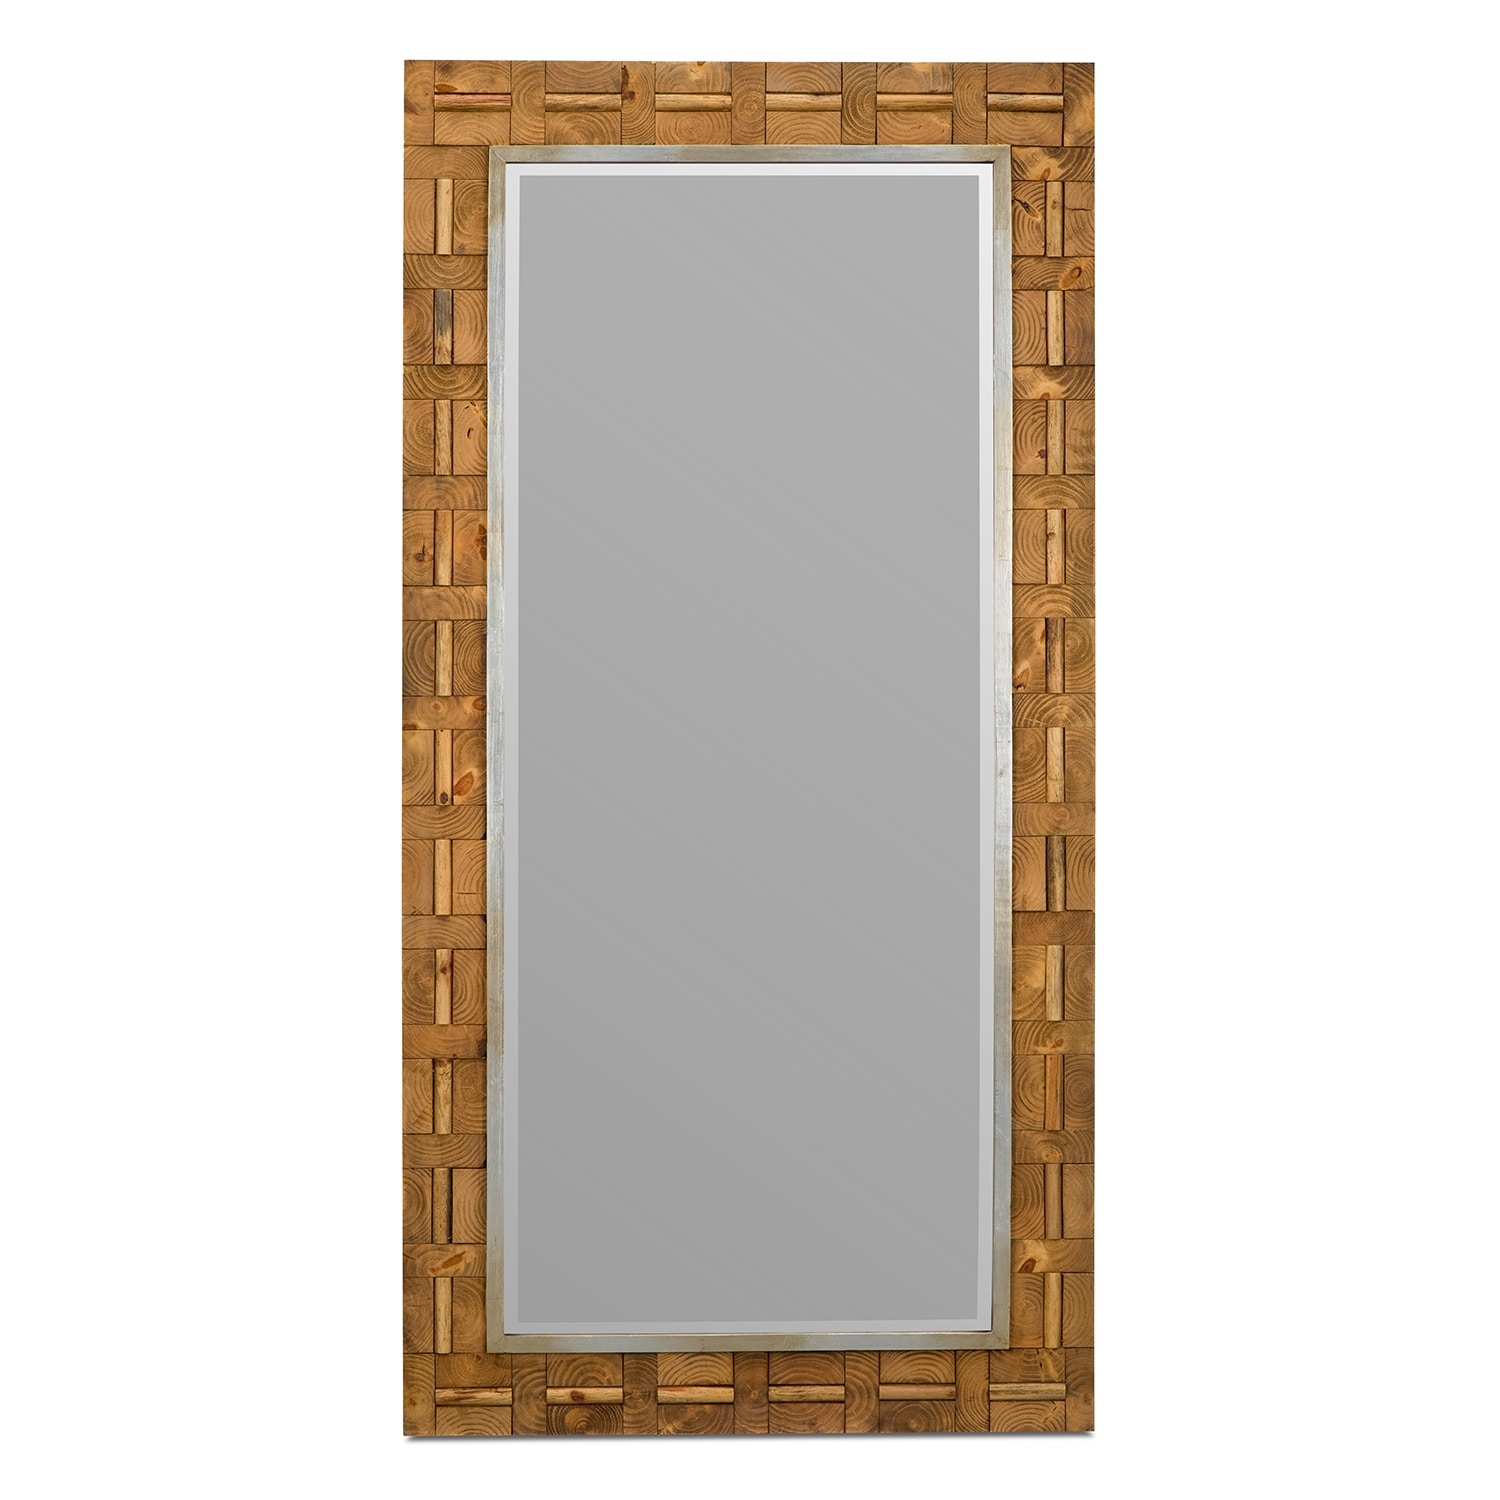 Accent and Occasional Furniture - River Floor Mirror - Tan